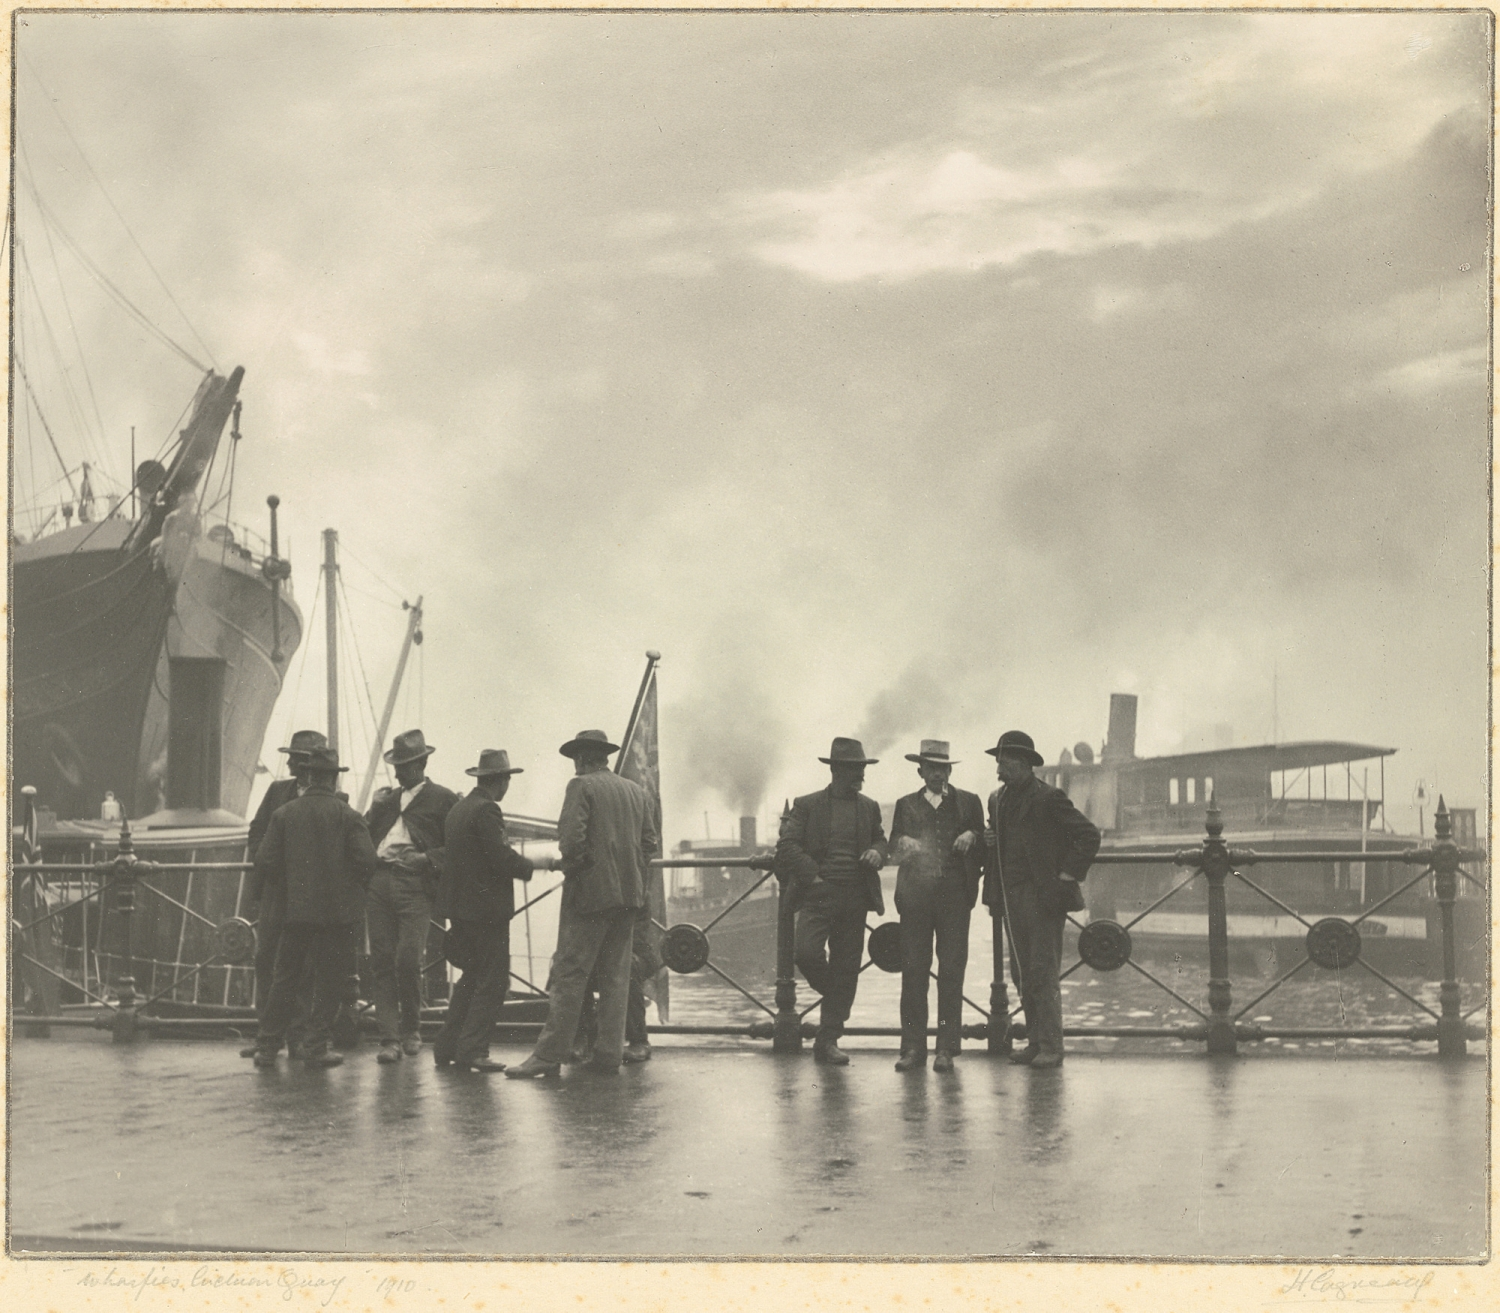 Group of eight men in hats standing in front of harbour scene with boats in background.